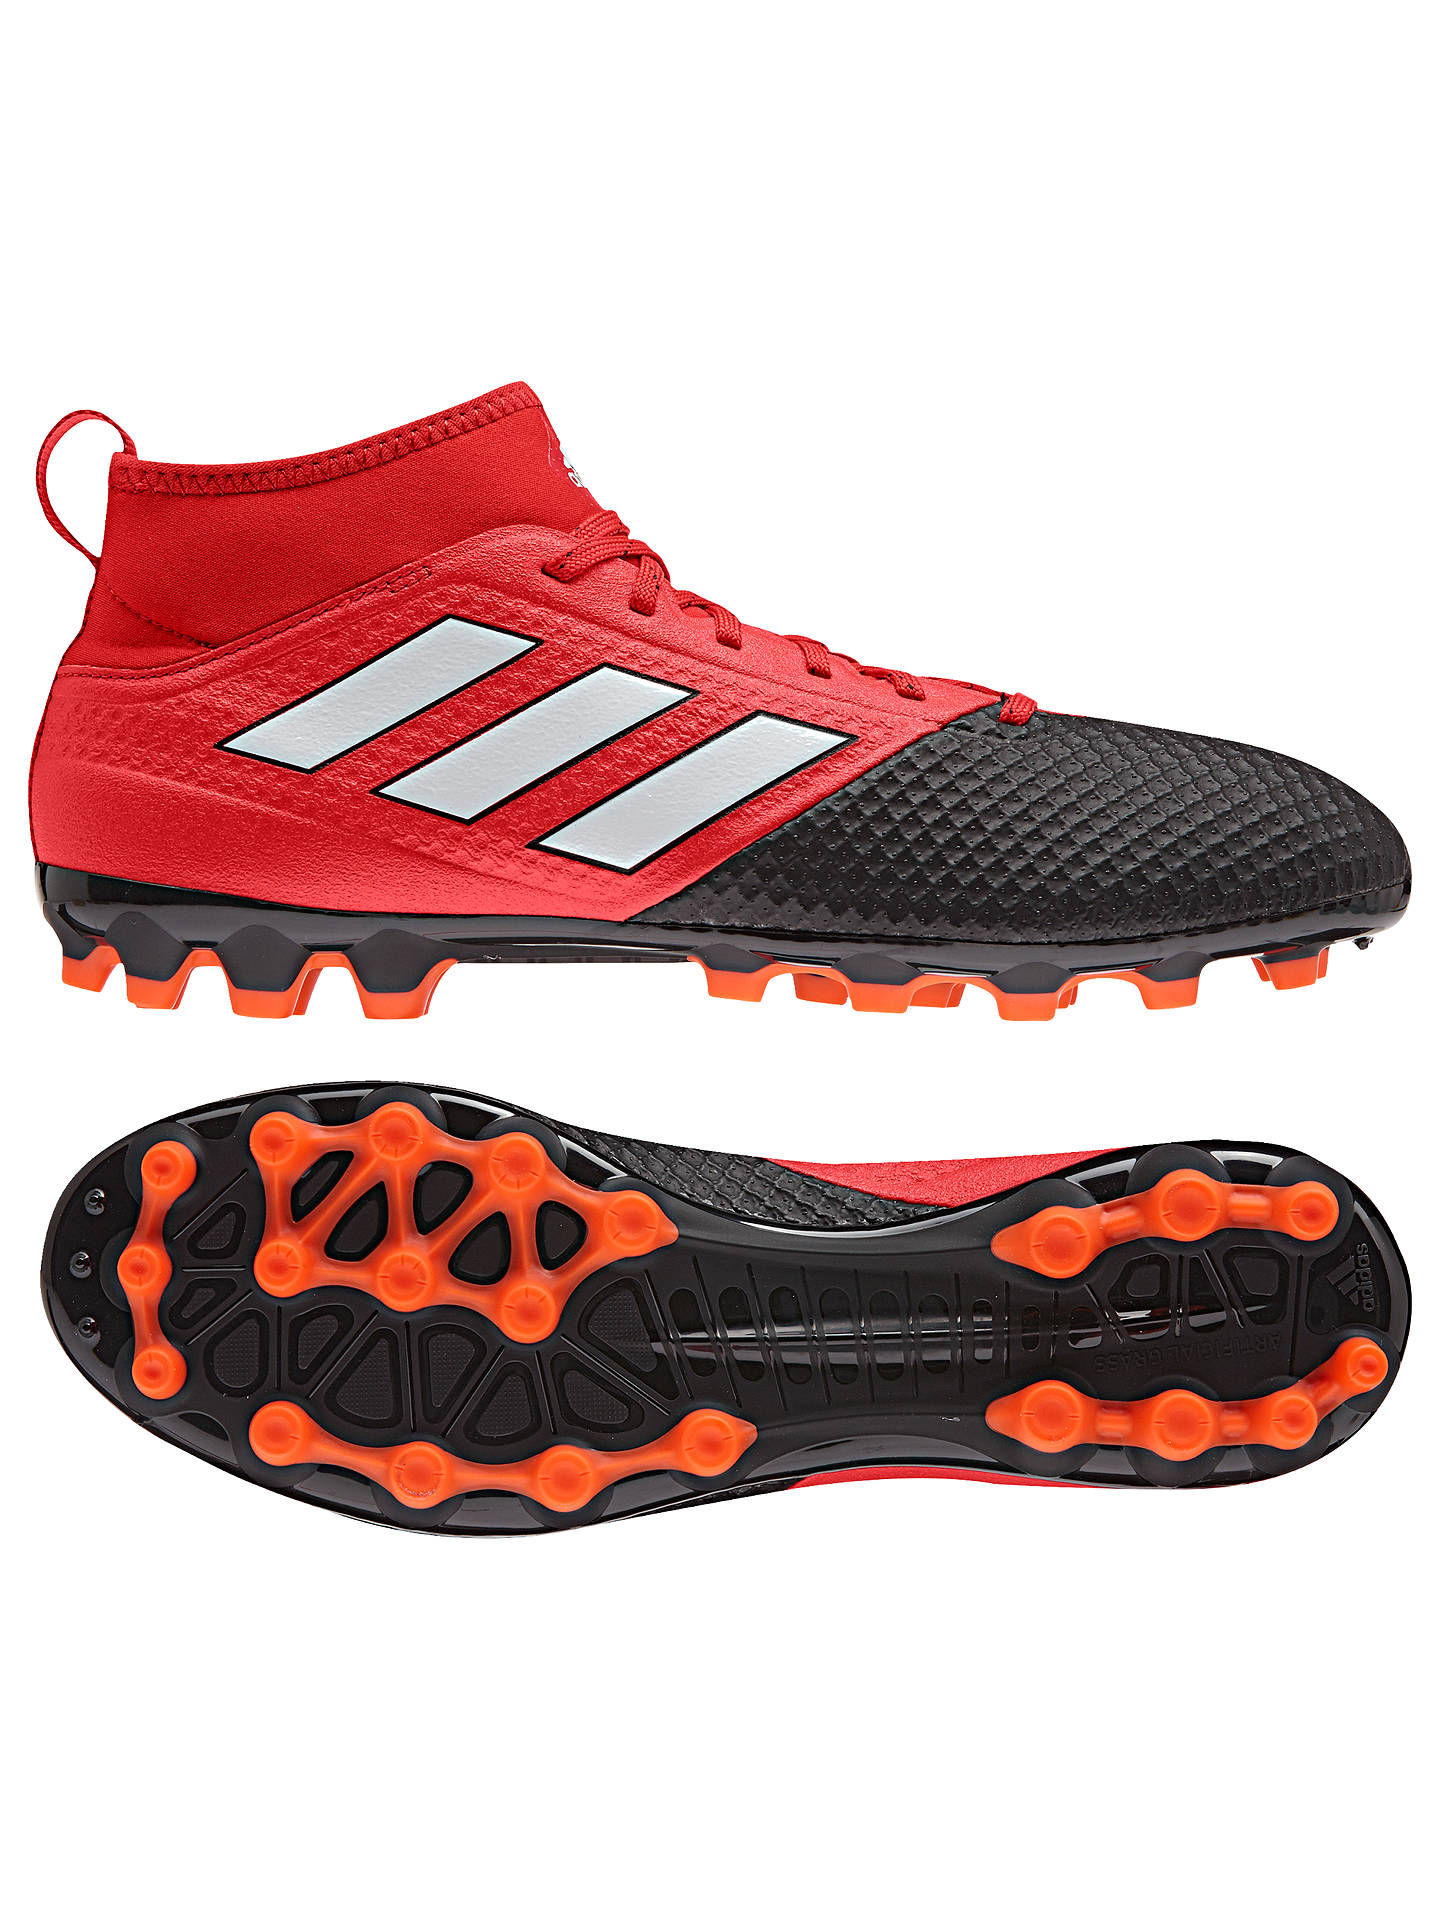 uk availability 6dfbe 5e3ad ... Buy Adidas Ace 17.3 Primemesh AG Men s Football Boots, Red Black, 7  Online ...